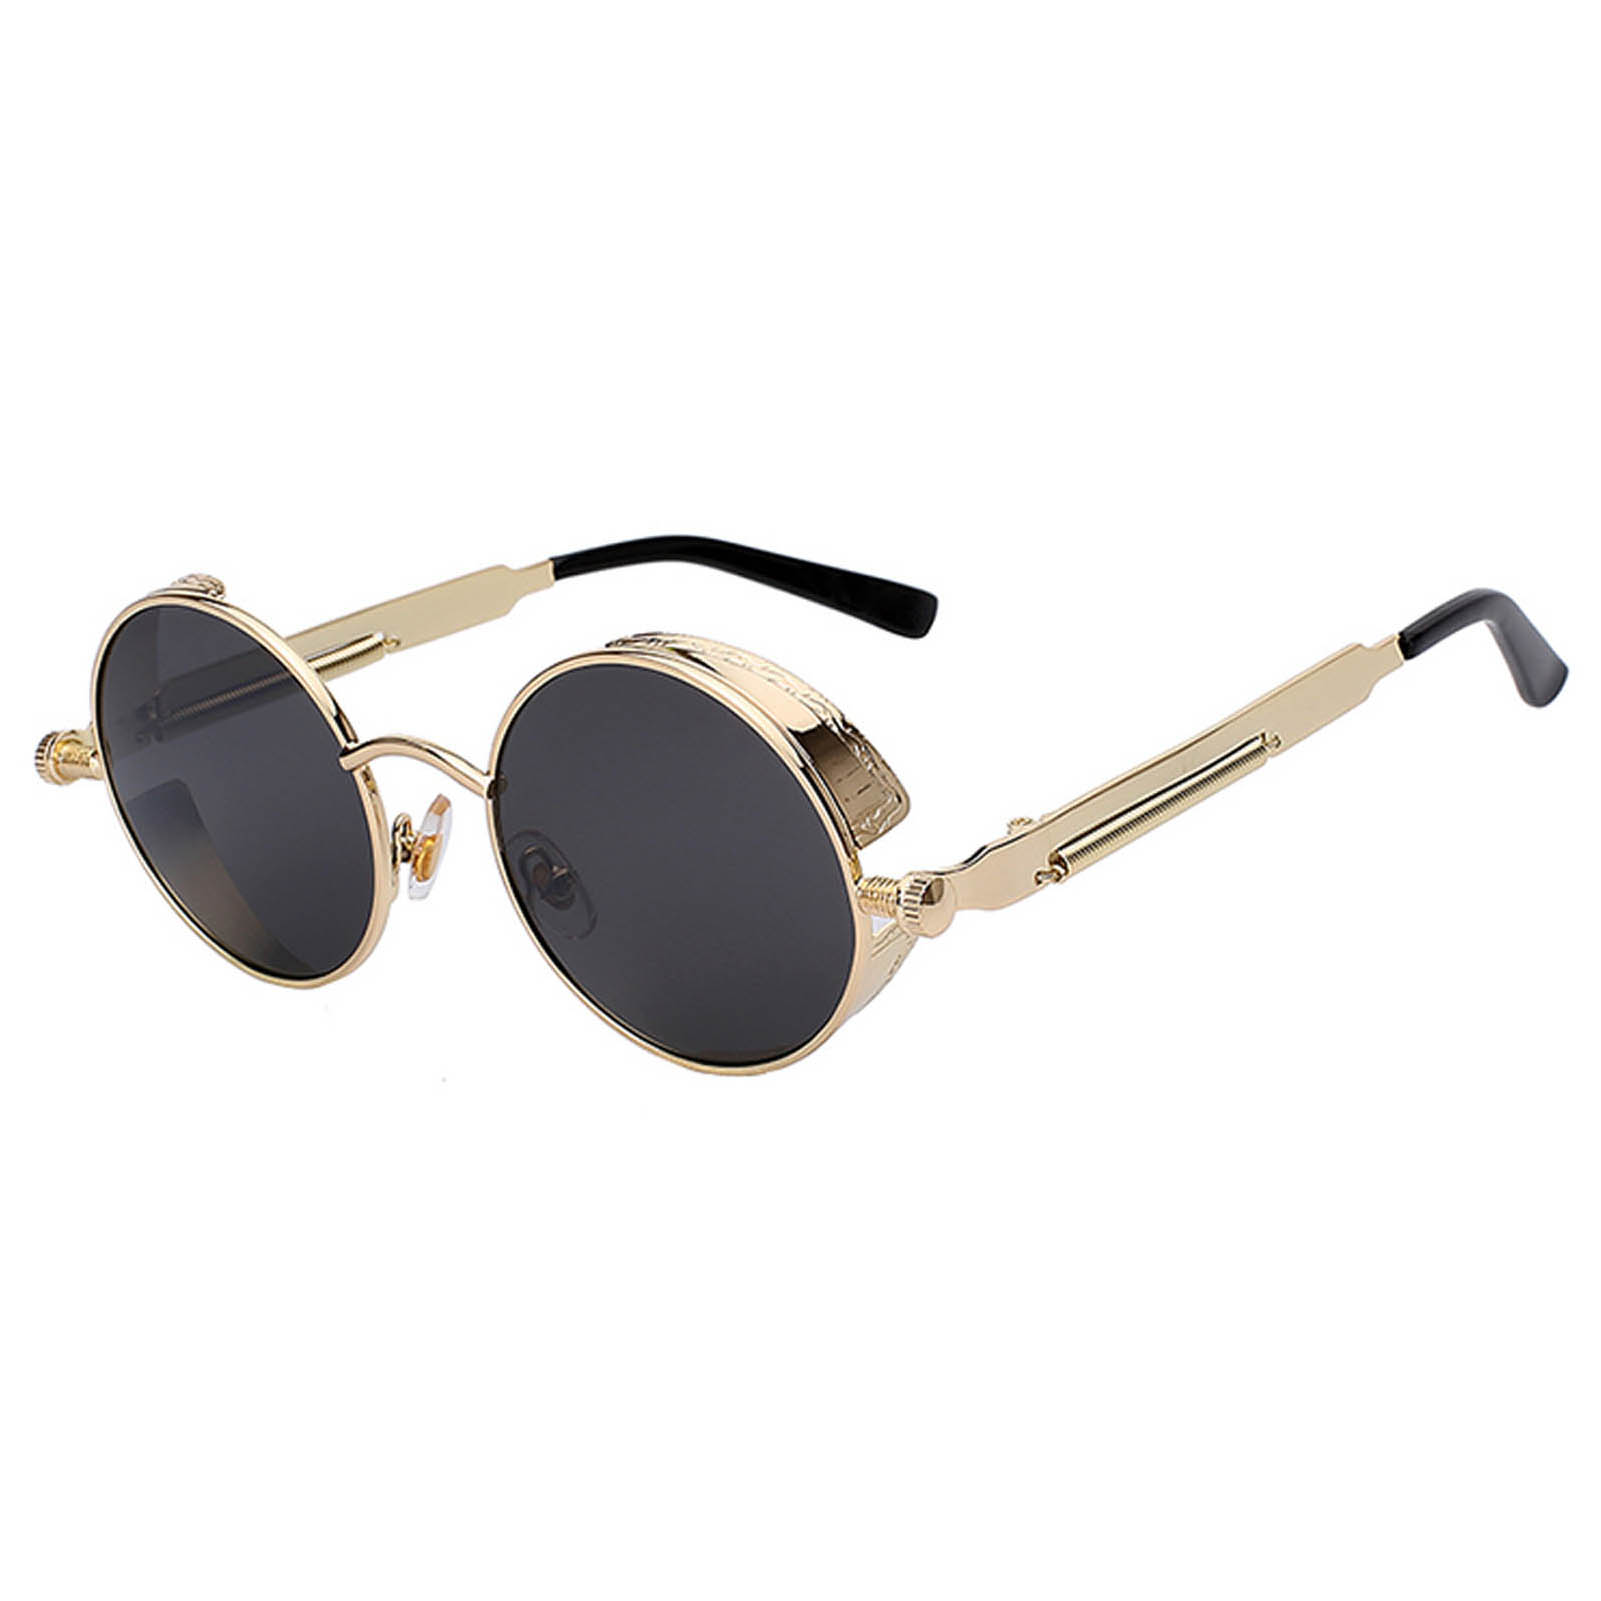 7e83939c681e 060 Steampunk C1 Gothic Sunglasses Metal Round Circle Gold Frame Black Lens  One Pair